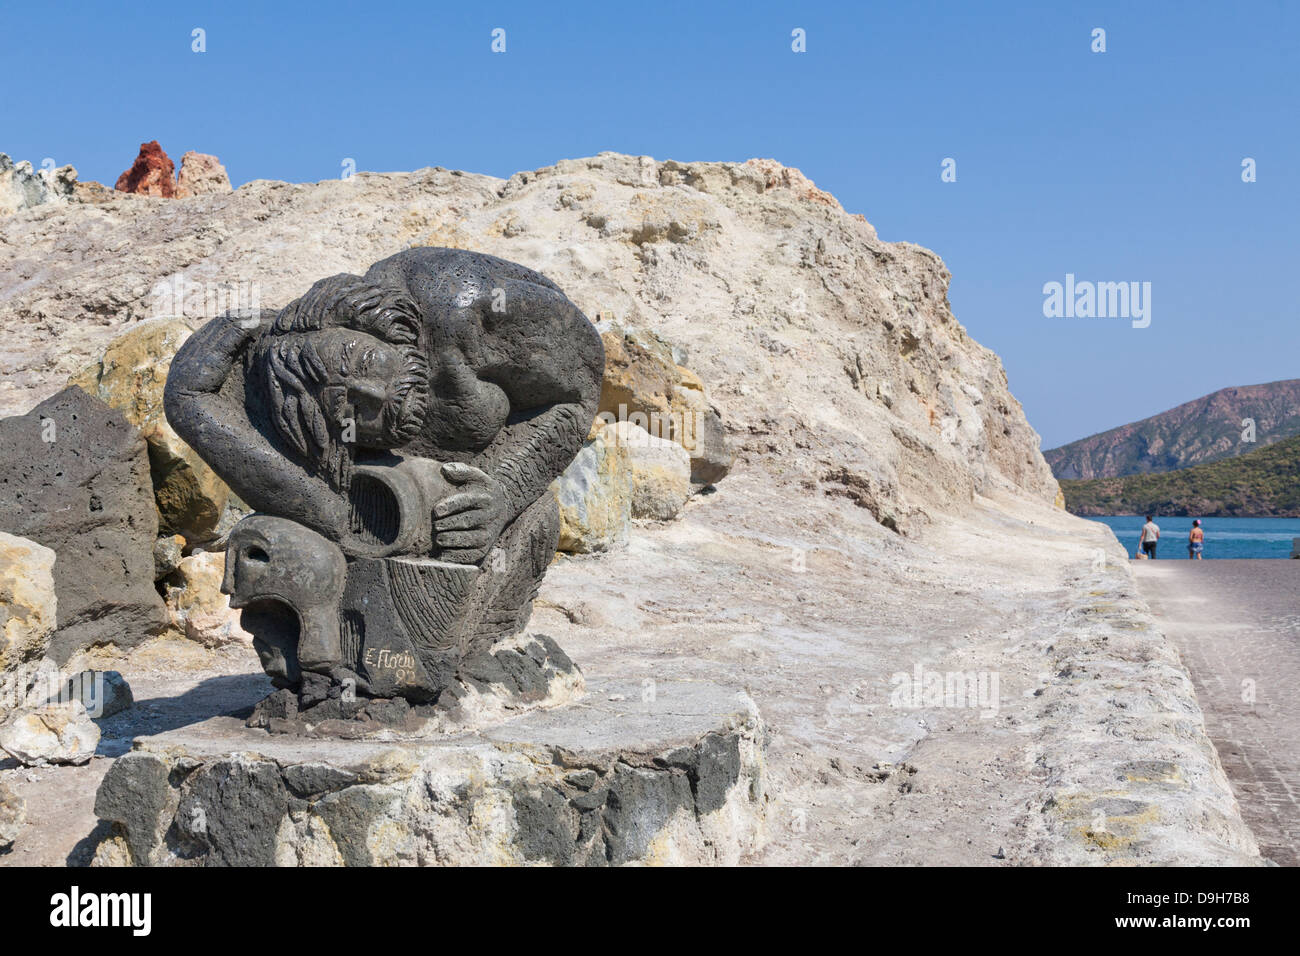 Sculpture, Vulcano, Aeolian Islands, Italy - Stock Image